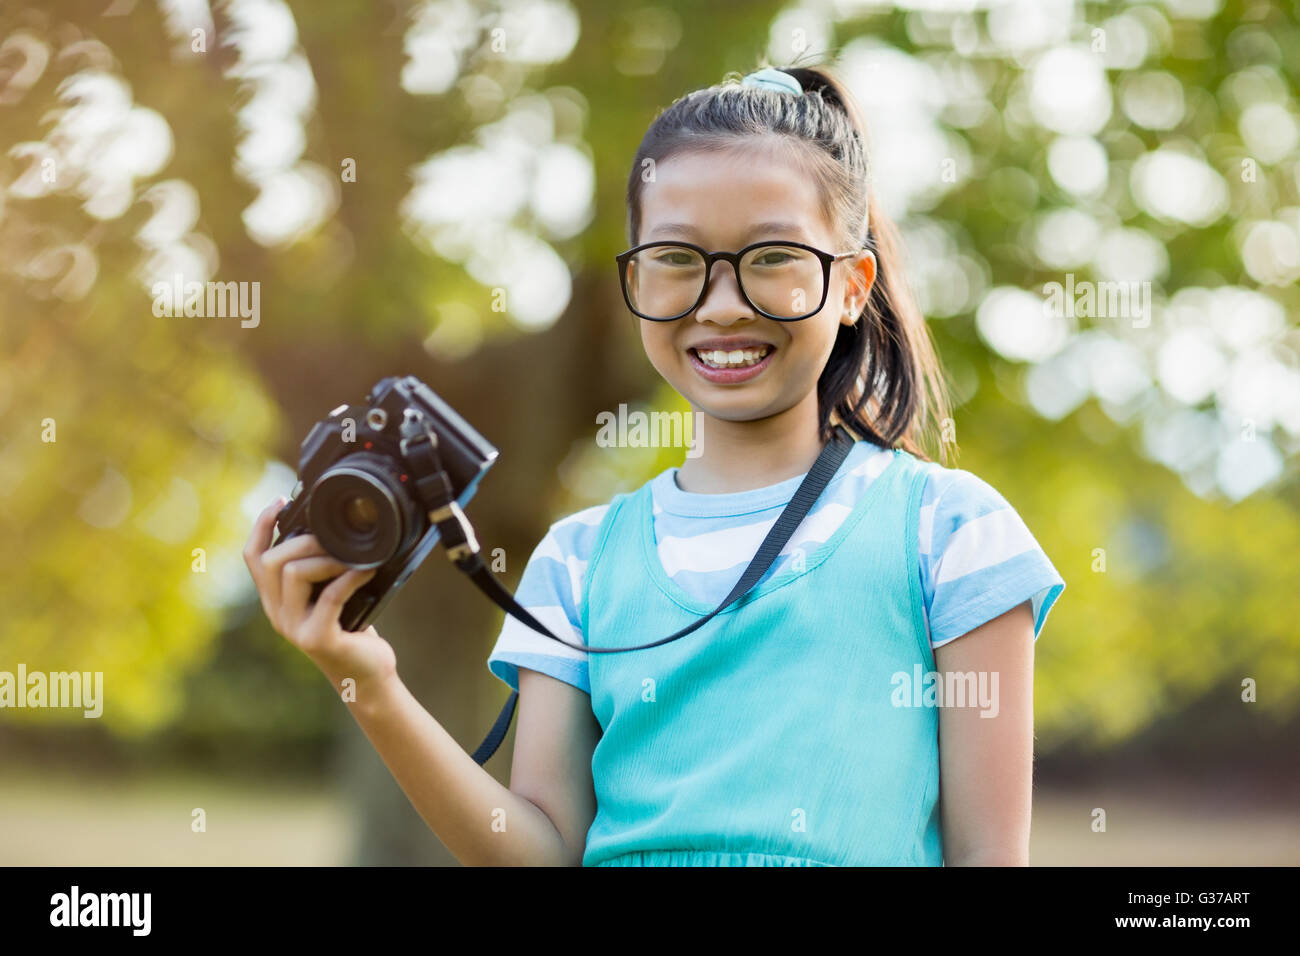 Portrait of smiling girl in spectacle holding a camera - Stock Image